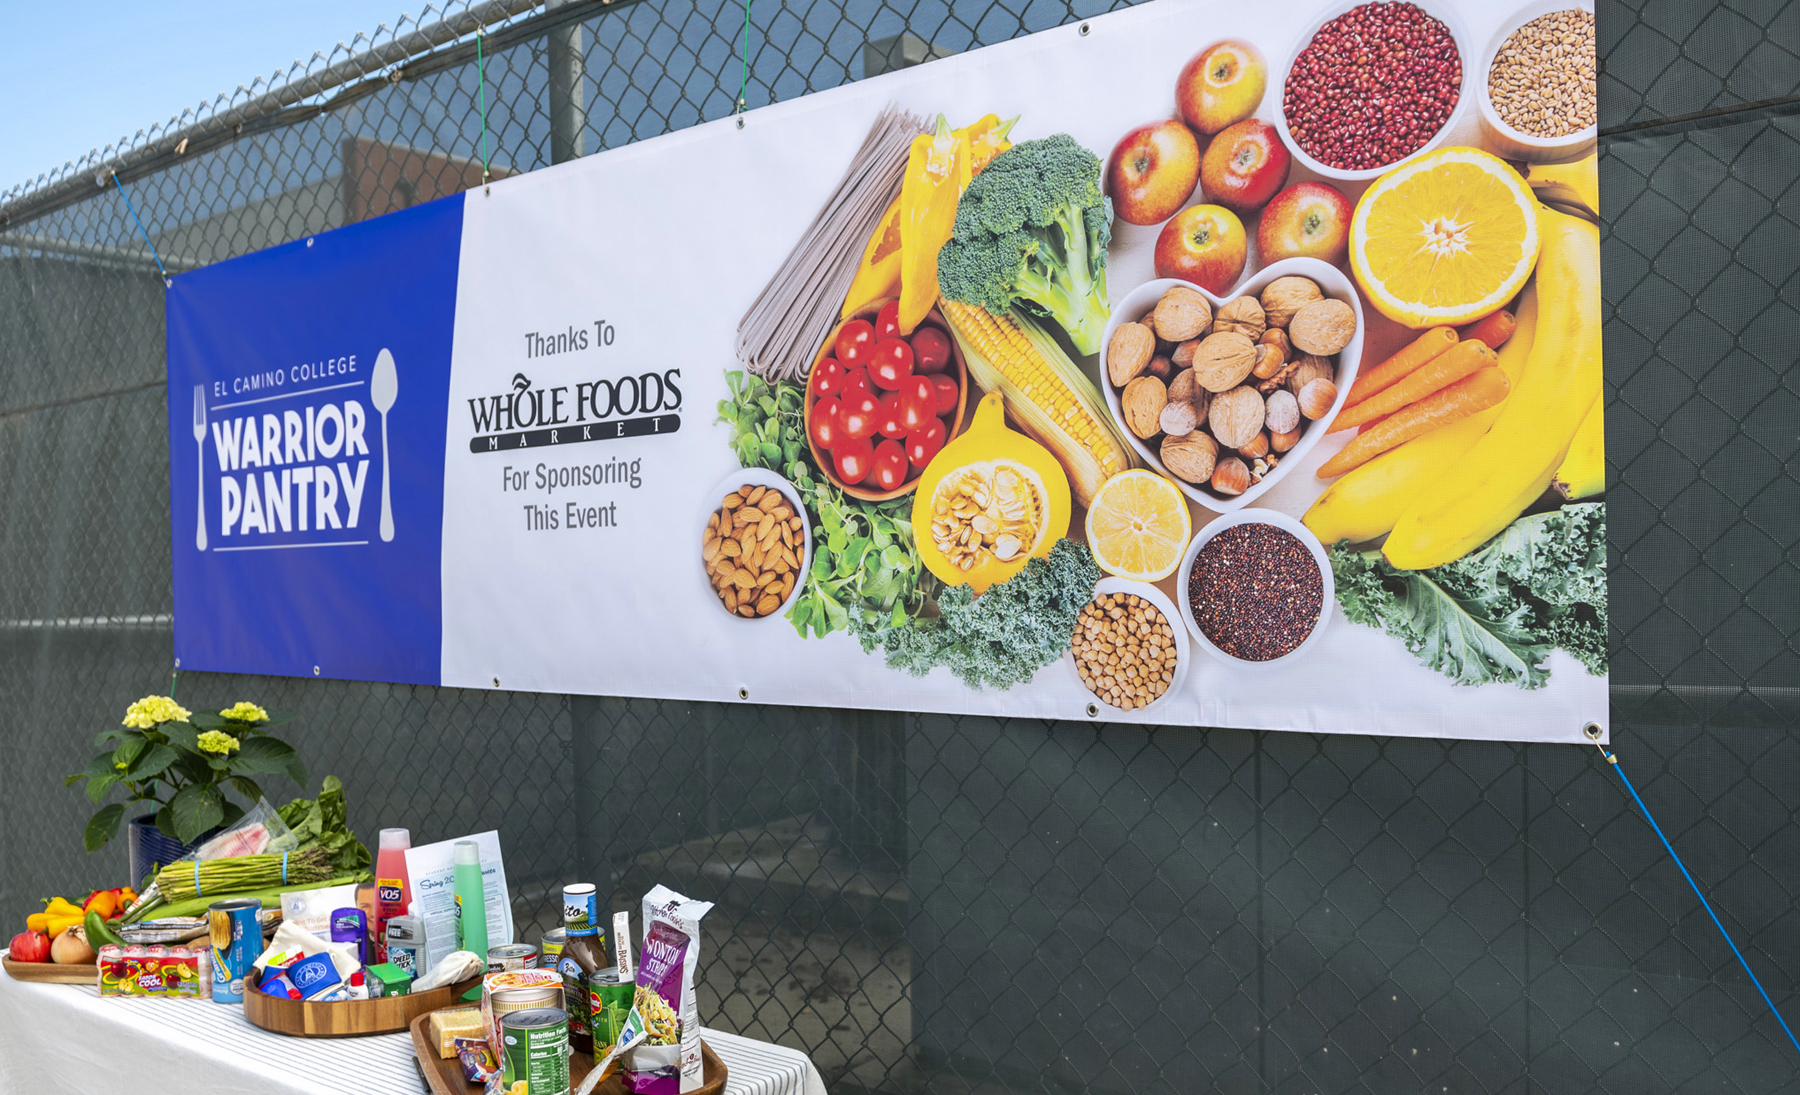 Whole Foods Market Sponsored Food Distribution to Students